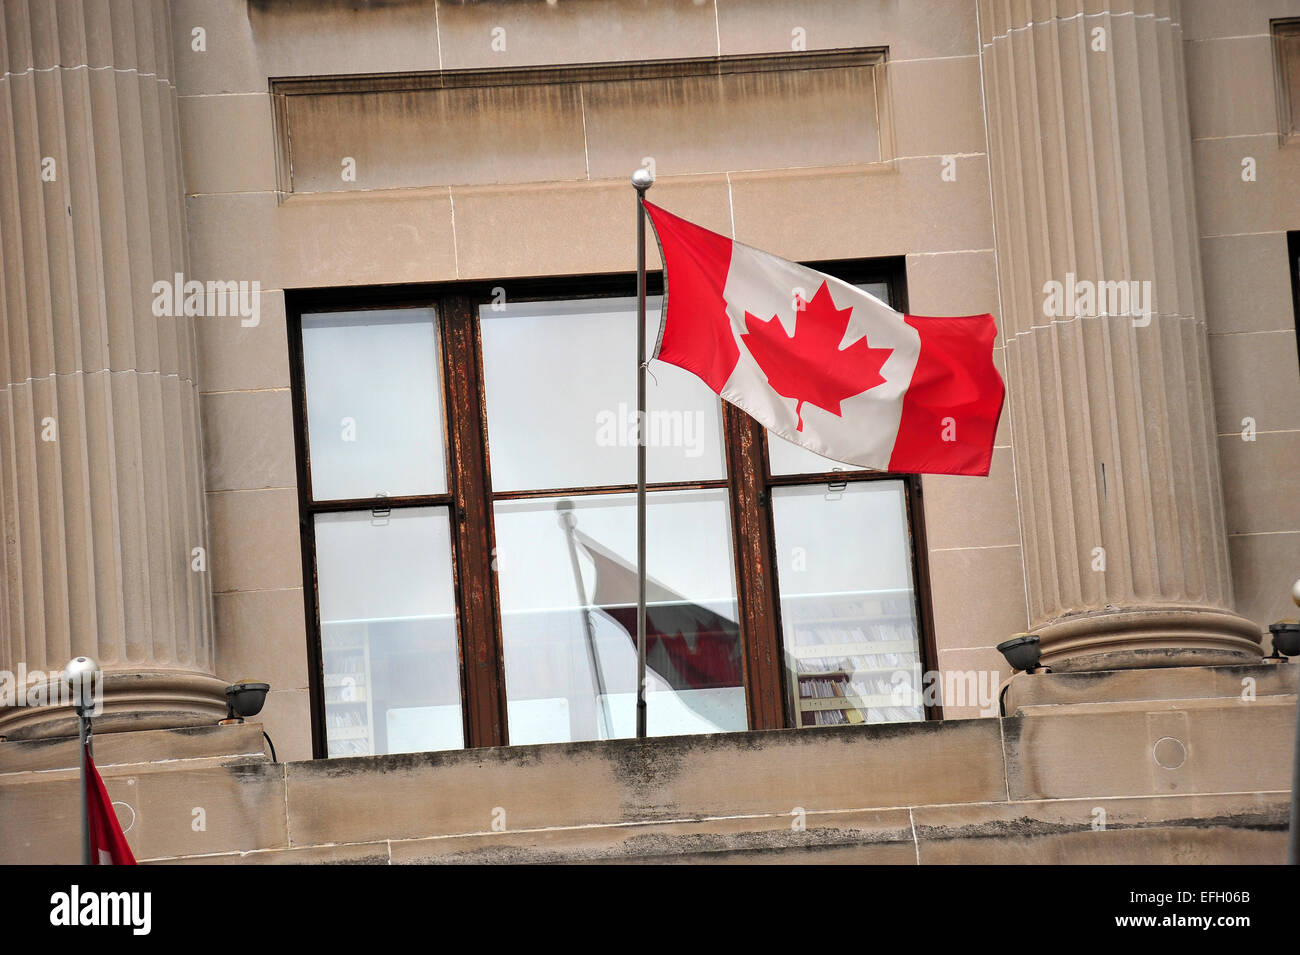 The Canadian flag on a flagpole on the side of a building in London, Ontario, Canada. - Stock Image